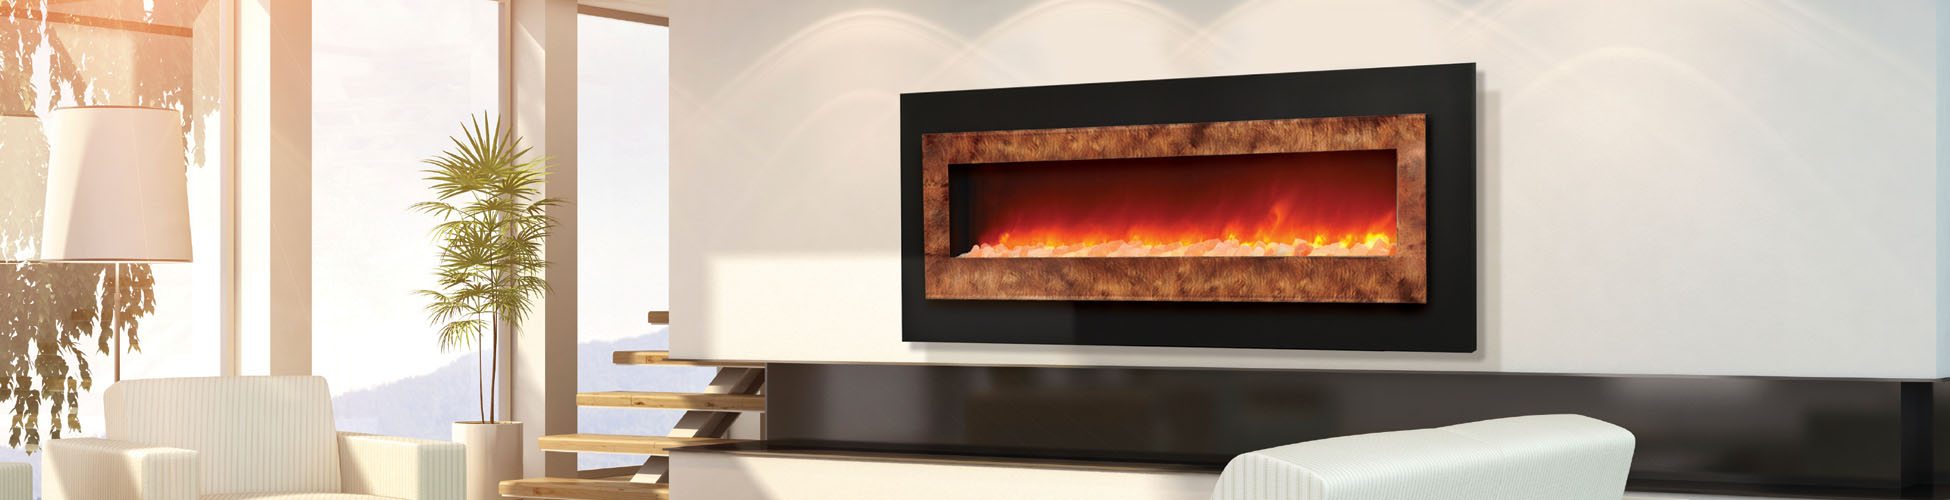 WM FML 85 Linear Electric Fireplace Amantii Electric